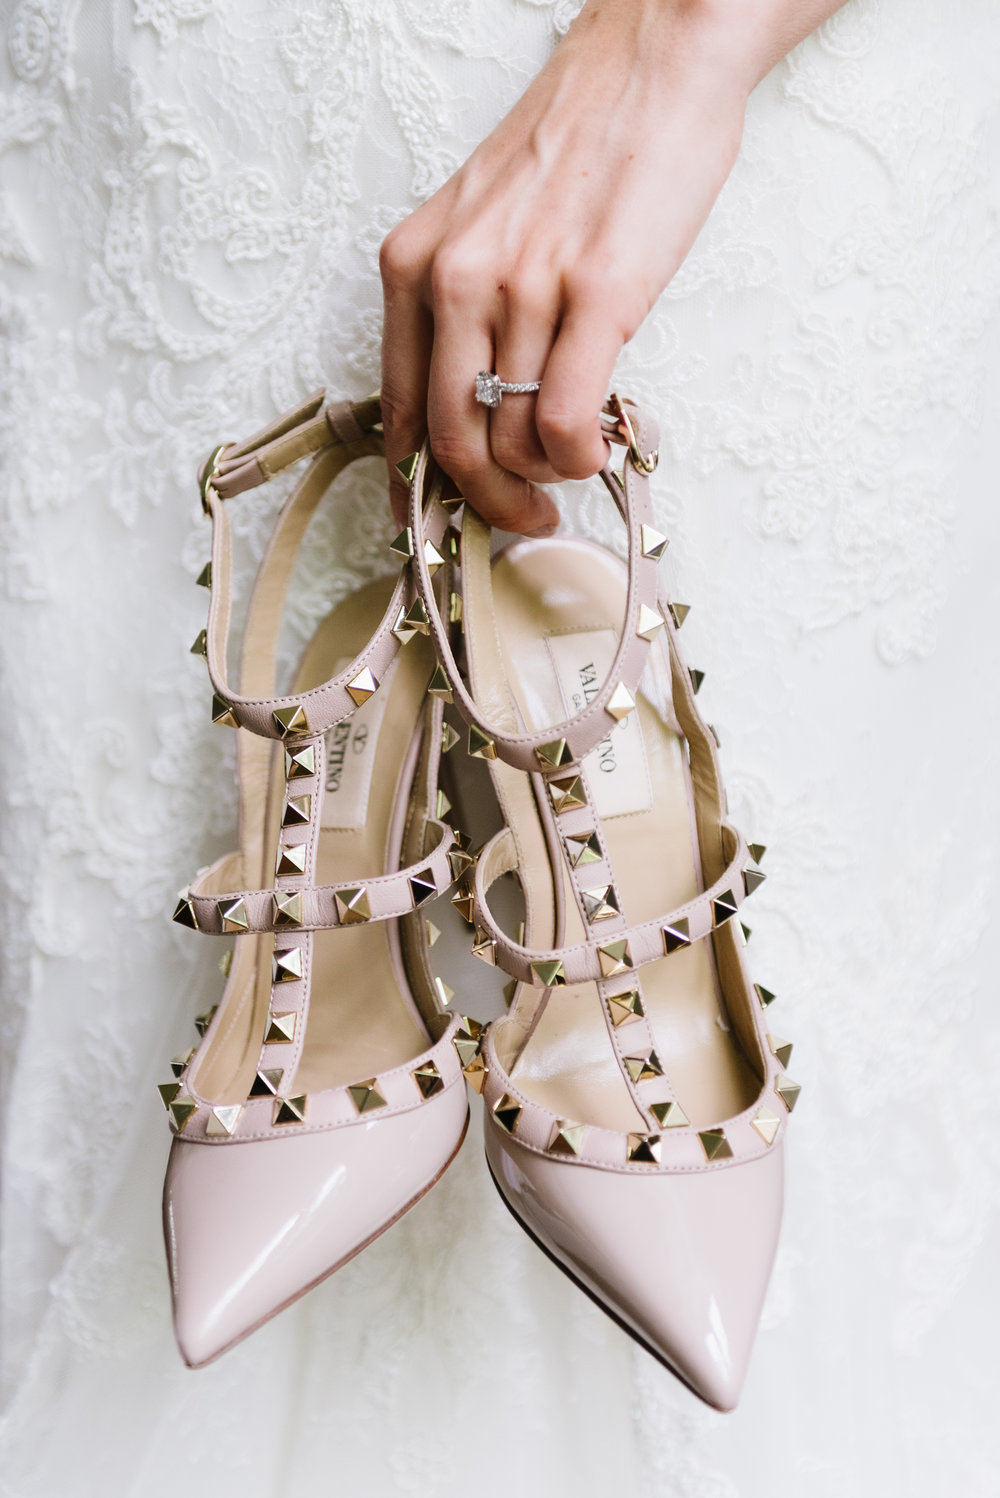 bride-wedding-shoes-valentino-rockstud